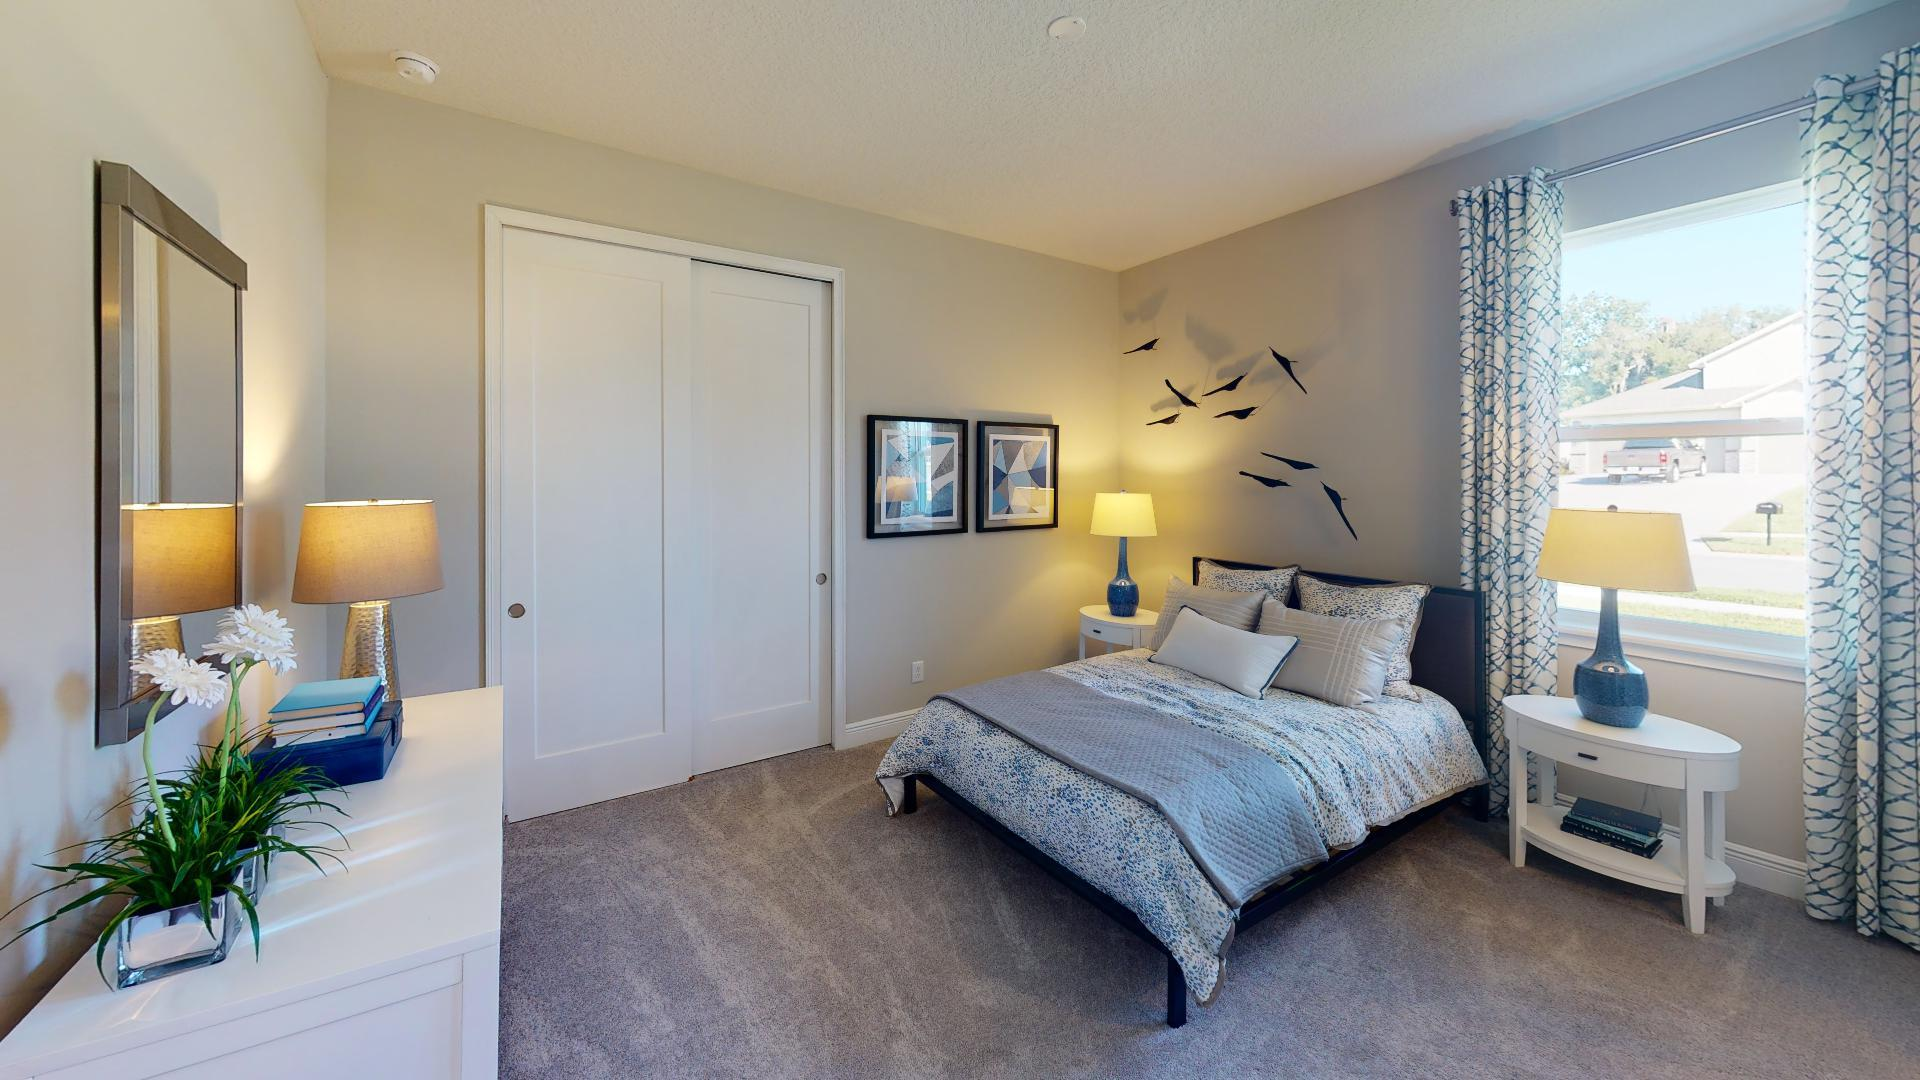 Bedroom featured in the Linburn II By Regal Park Homes in Orlando, FL